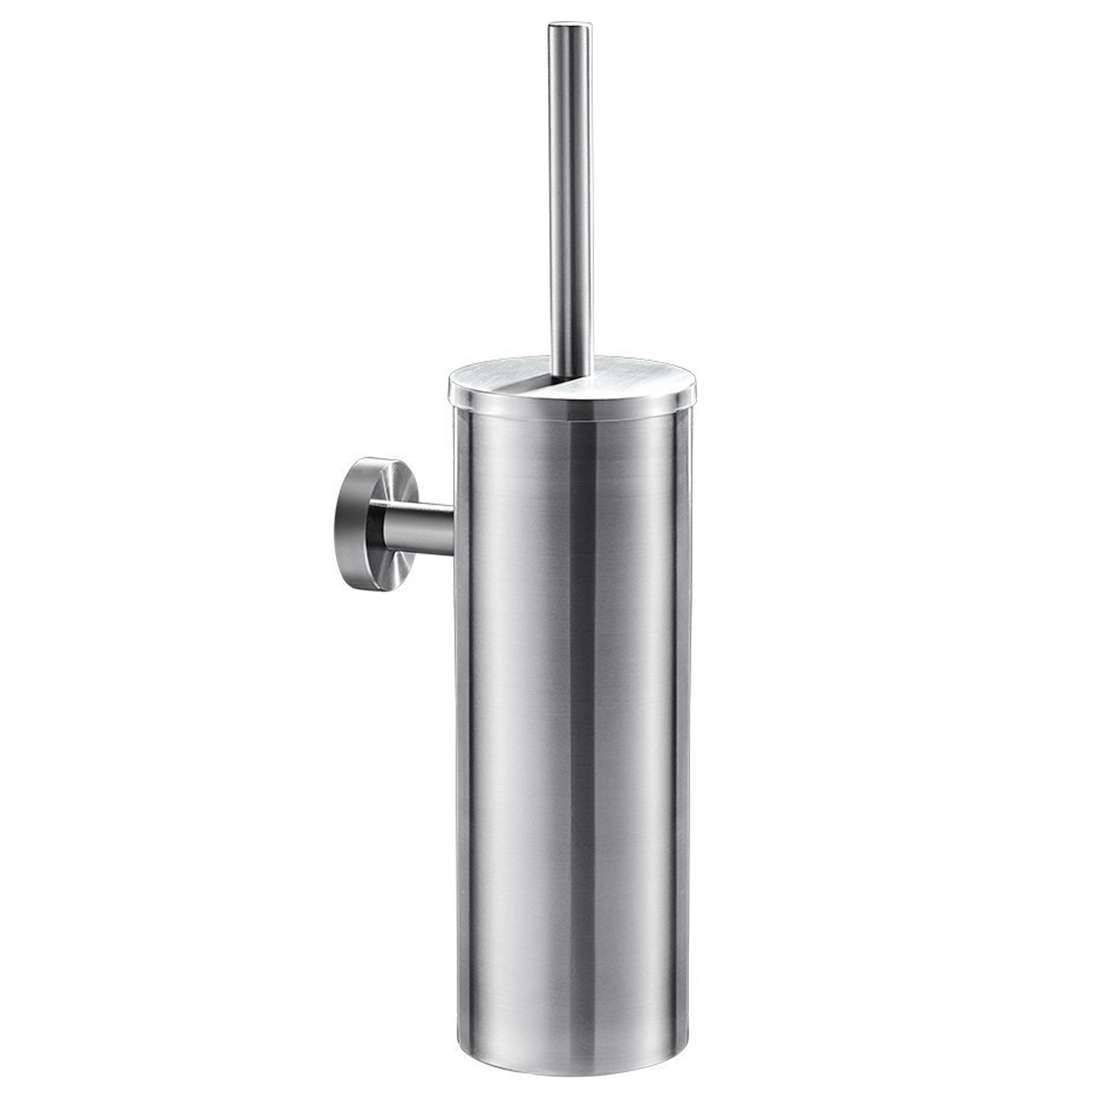 Toilet Brush for Cleaning Black Color with Stainless Steel Wall Mounted Brush Holder Chromed Finish brand new toilet brush for cleaning black color with stainless steel wall mounted brush holder chromed finish